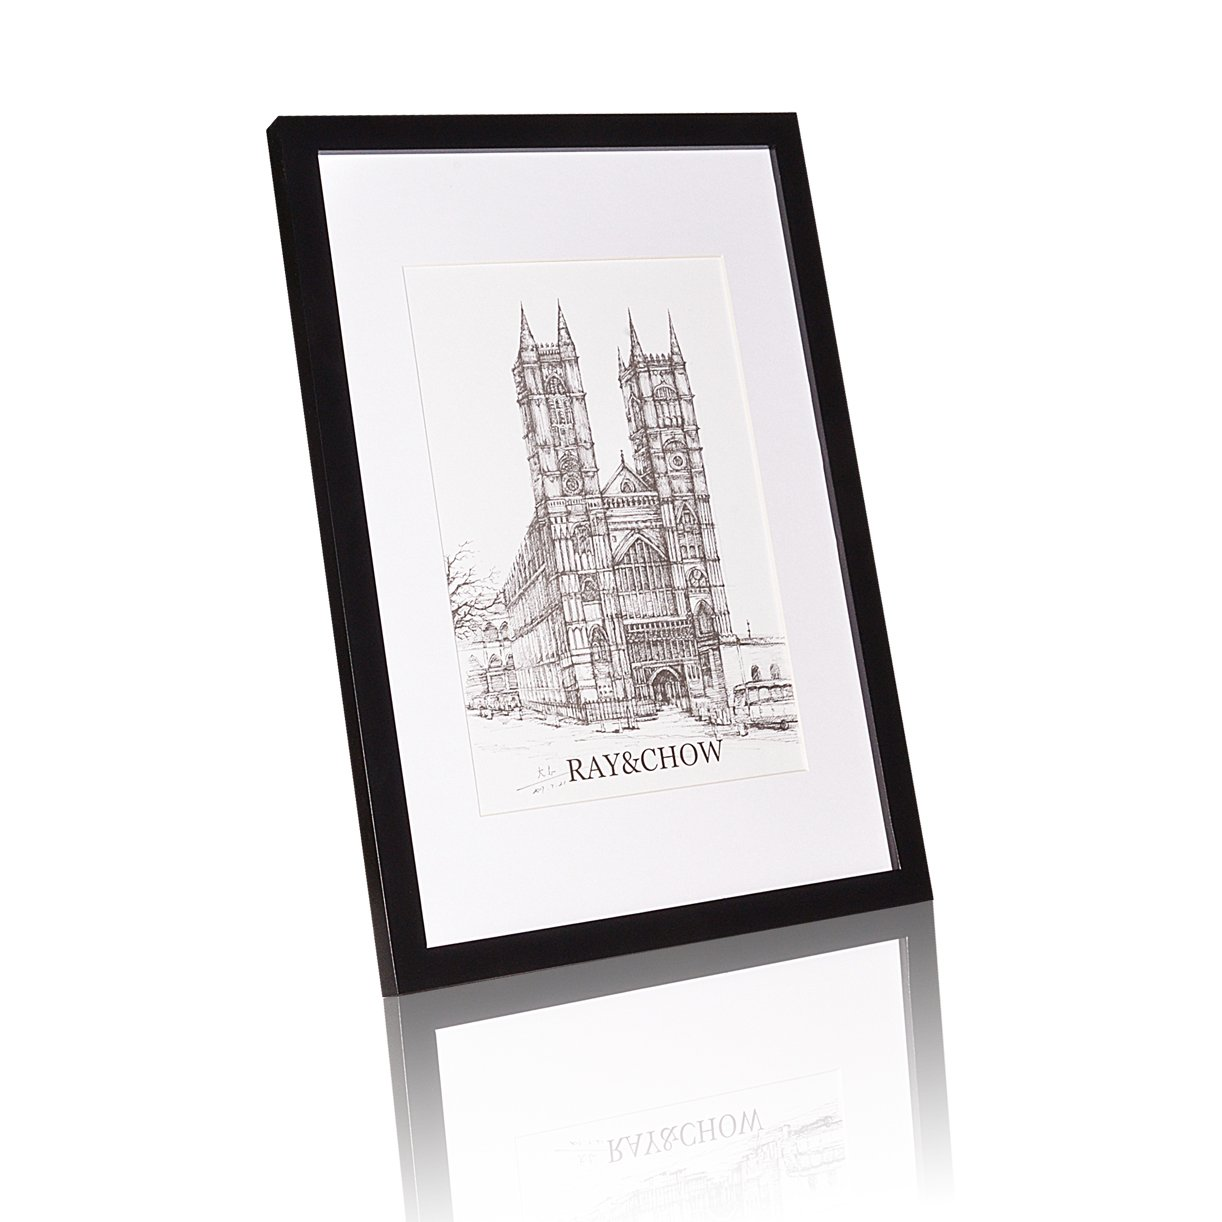 Ray & Chow 12x16 Picture Frame - Solid Wood - Glass Window - with Picture Mat for 8x12 Photo - Frame Width 2cm-Black